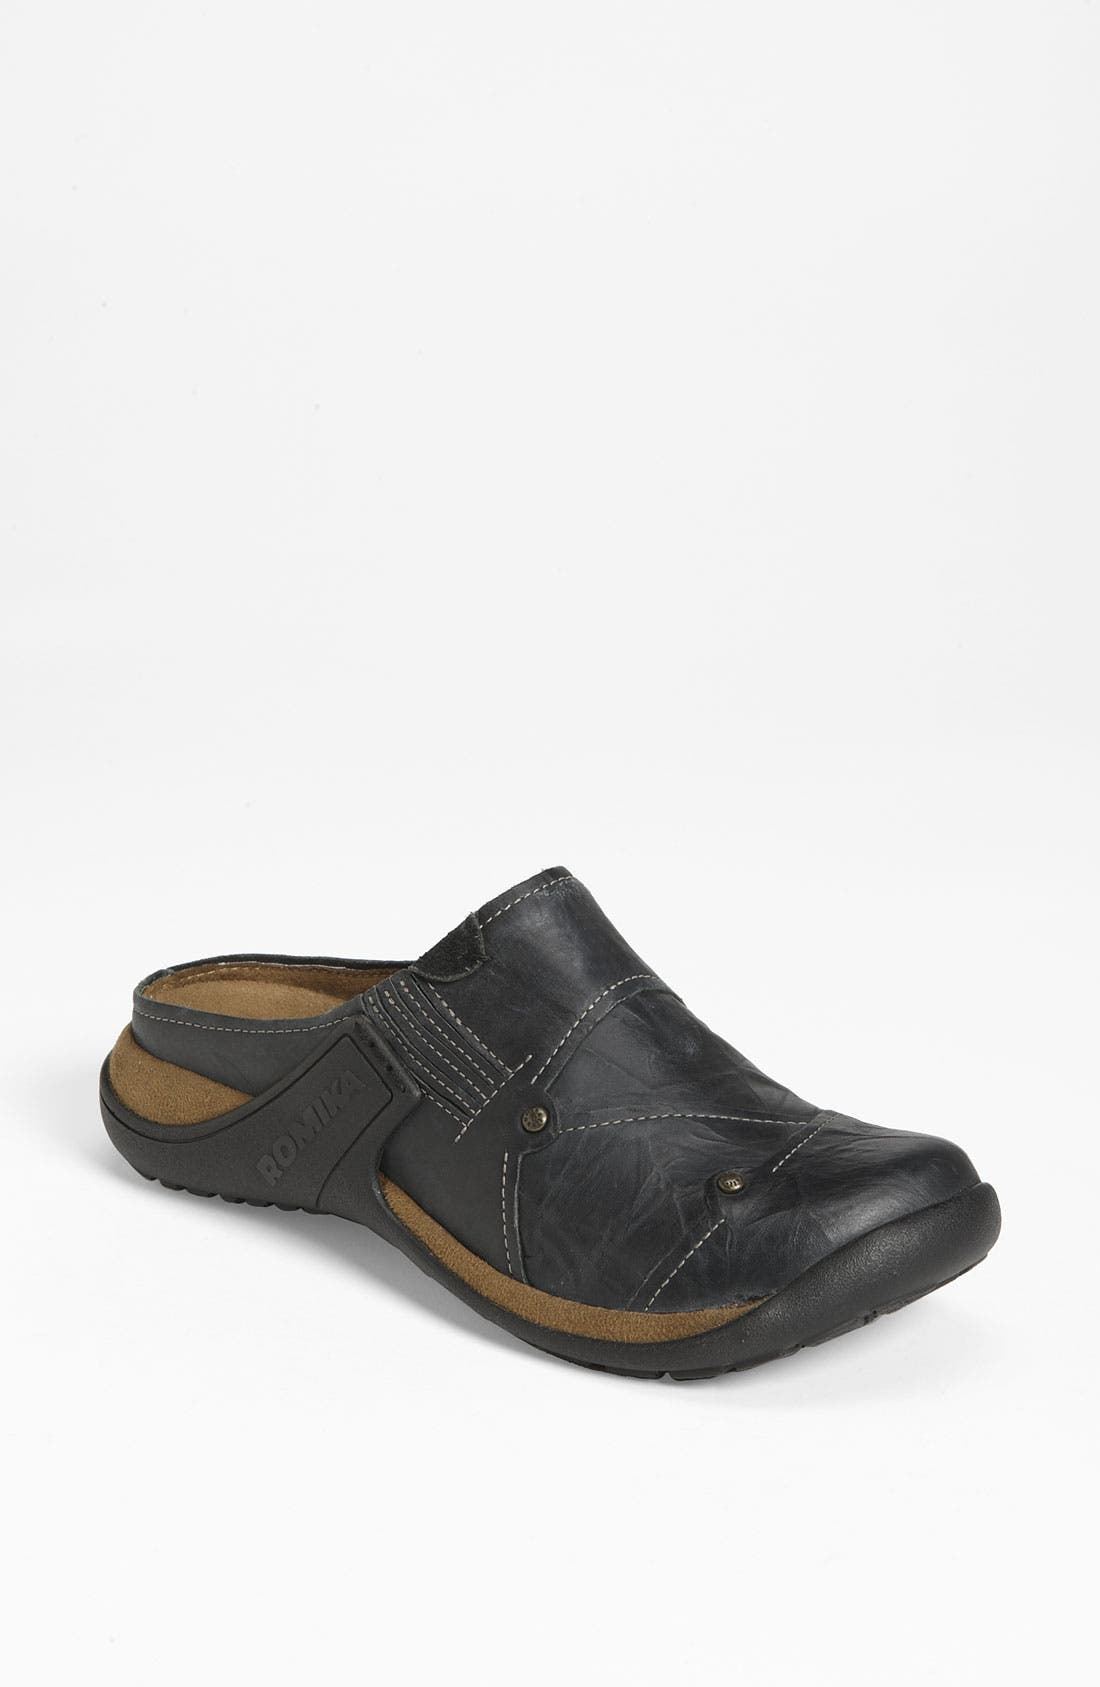 Alternate Image 1 Selected - Romika® 'Milla 69' Clog